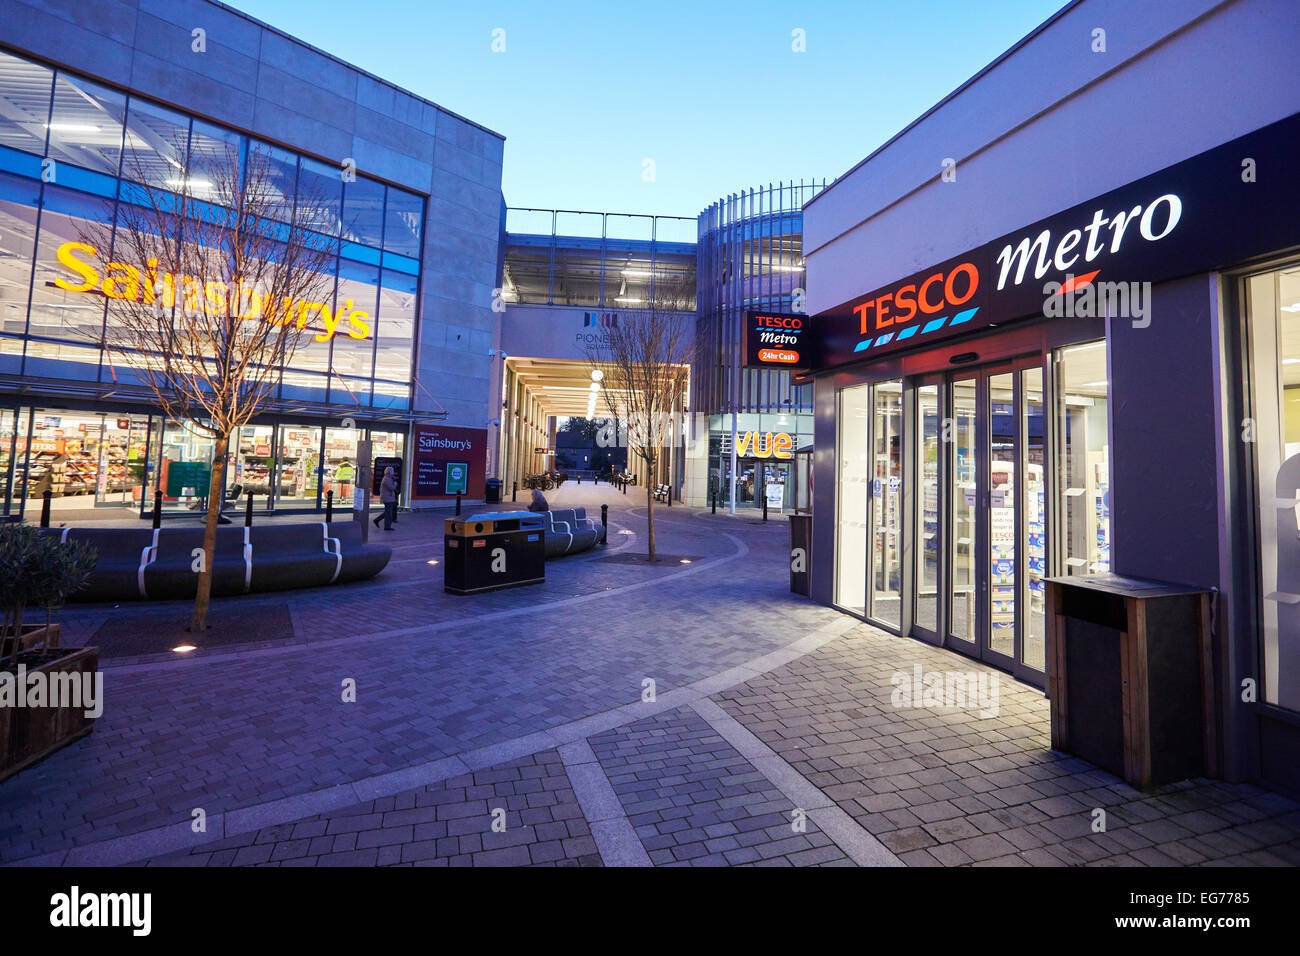 General view of the Tesco Metro store in Bicester. The store is one of 43 unprofitable locations being closed nationwide - Stock Image